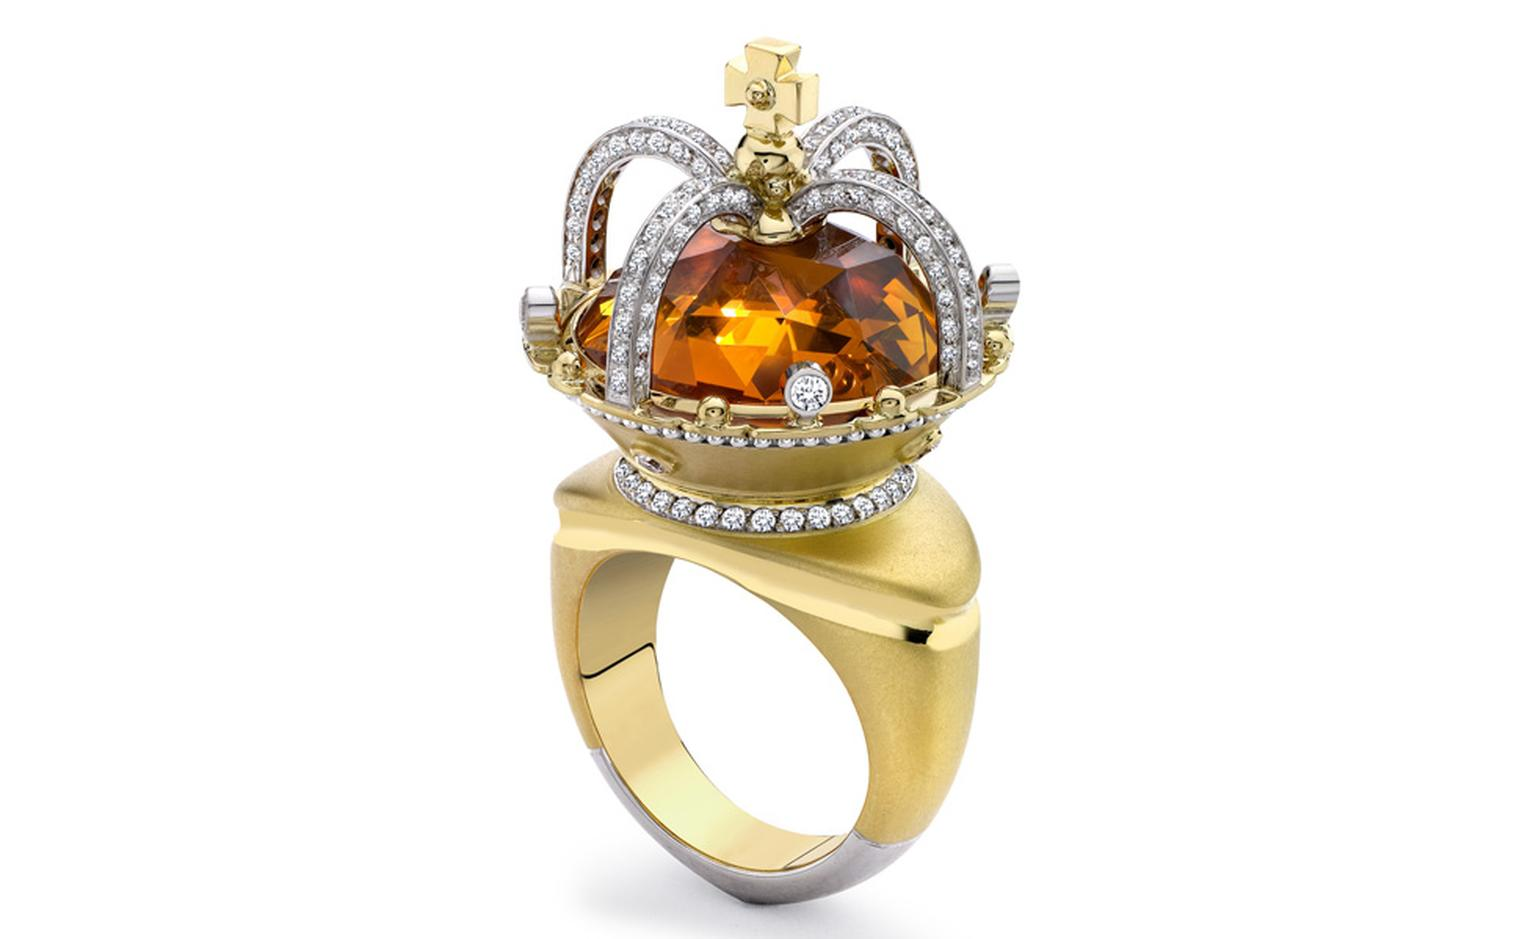 Theo Fennell 18ct Yellow & White Gold Citrine & Diamond Coronet Ring £16,700